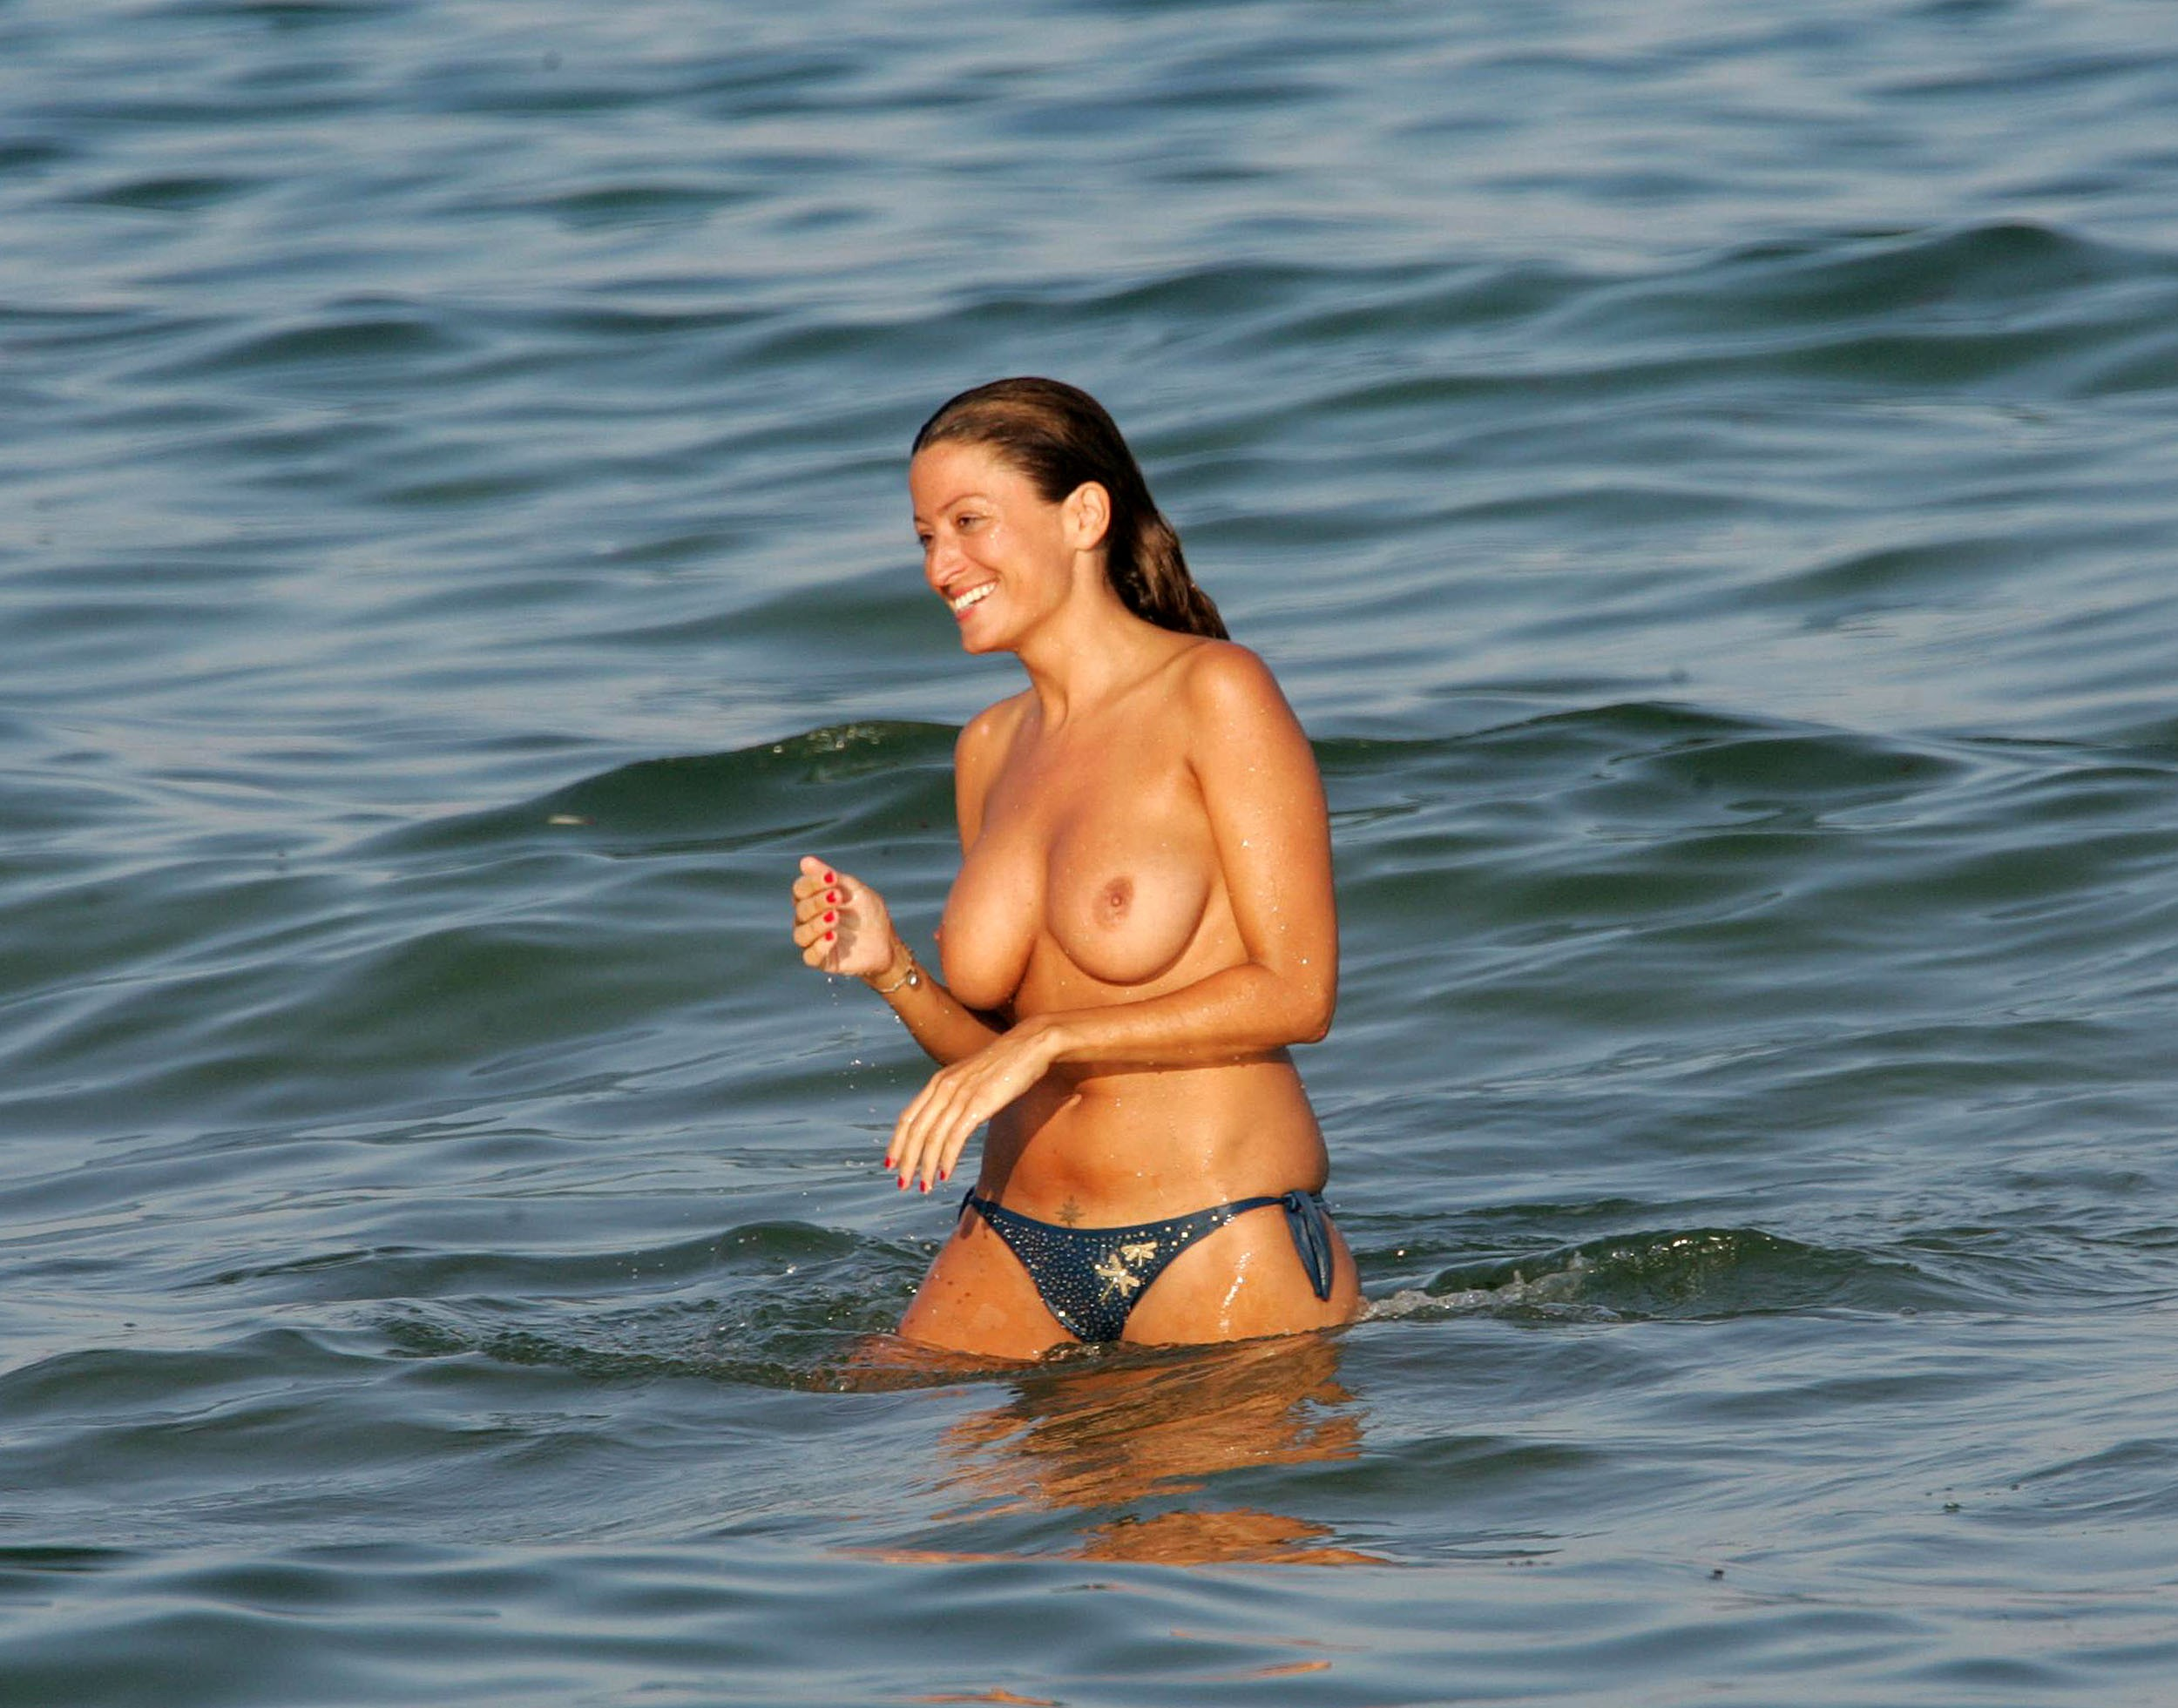 Rebecca loos topless pictures july